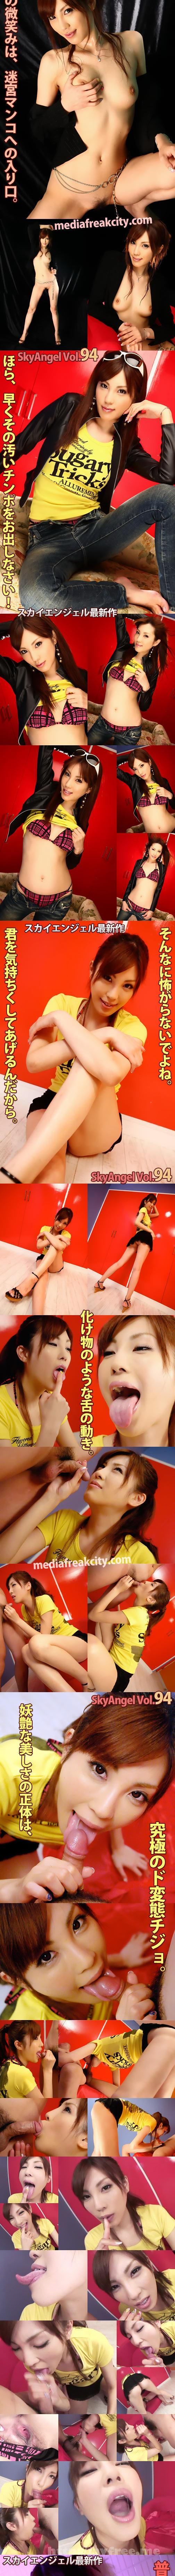 [SKY-141] Sky Angel Vol.94 : Kana Miura - image SKY-141_2 on https://javfree.me